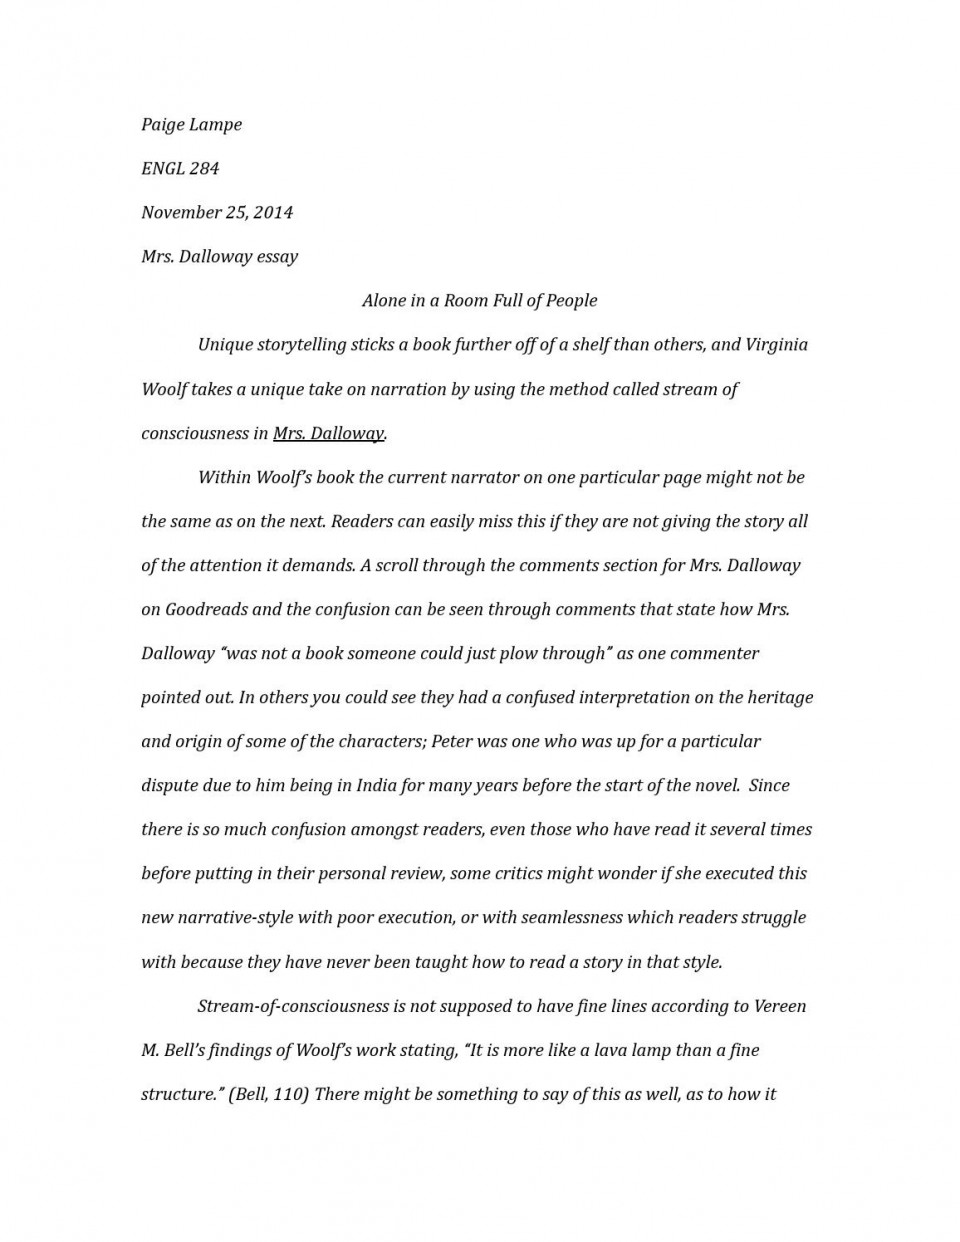 002 Mrs Dalloway Essay Page 1 Marvelous Critical Analysis Prompts 960